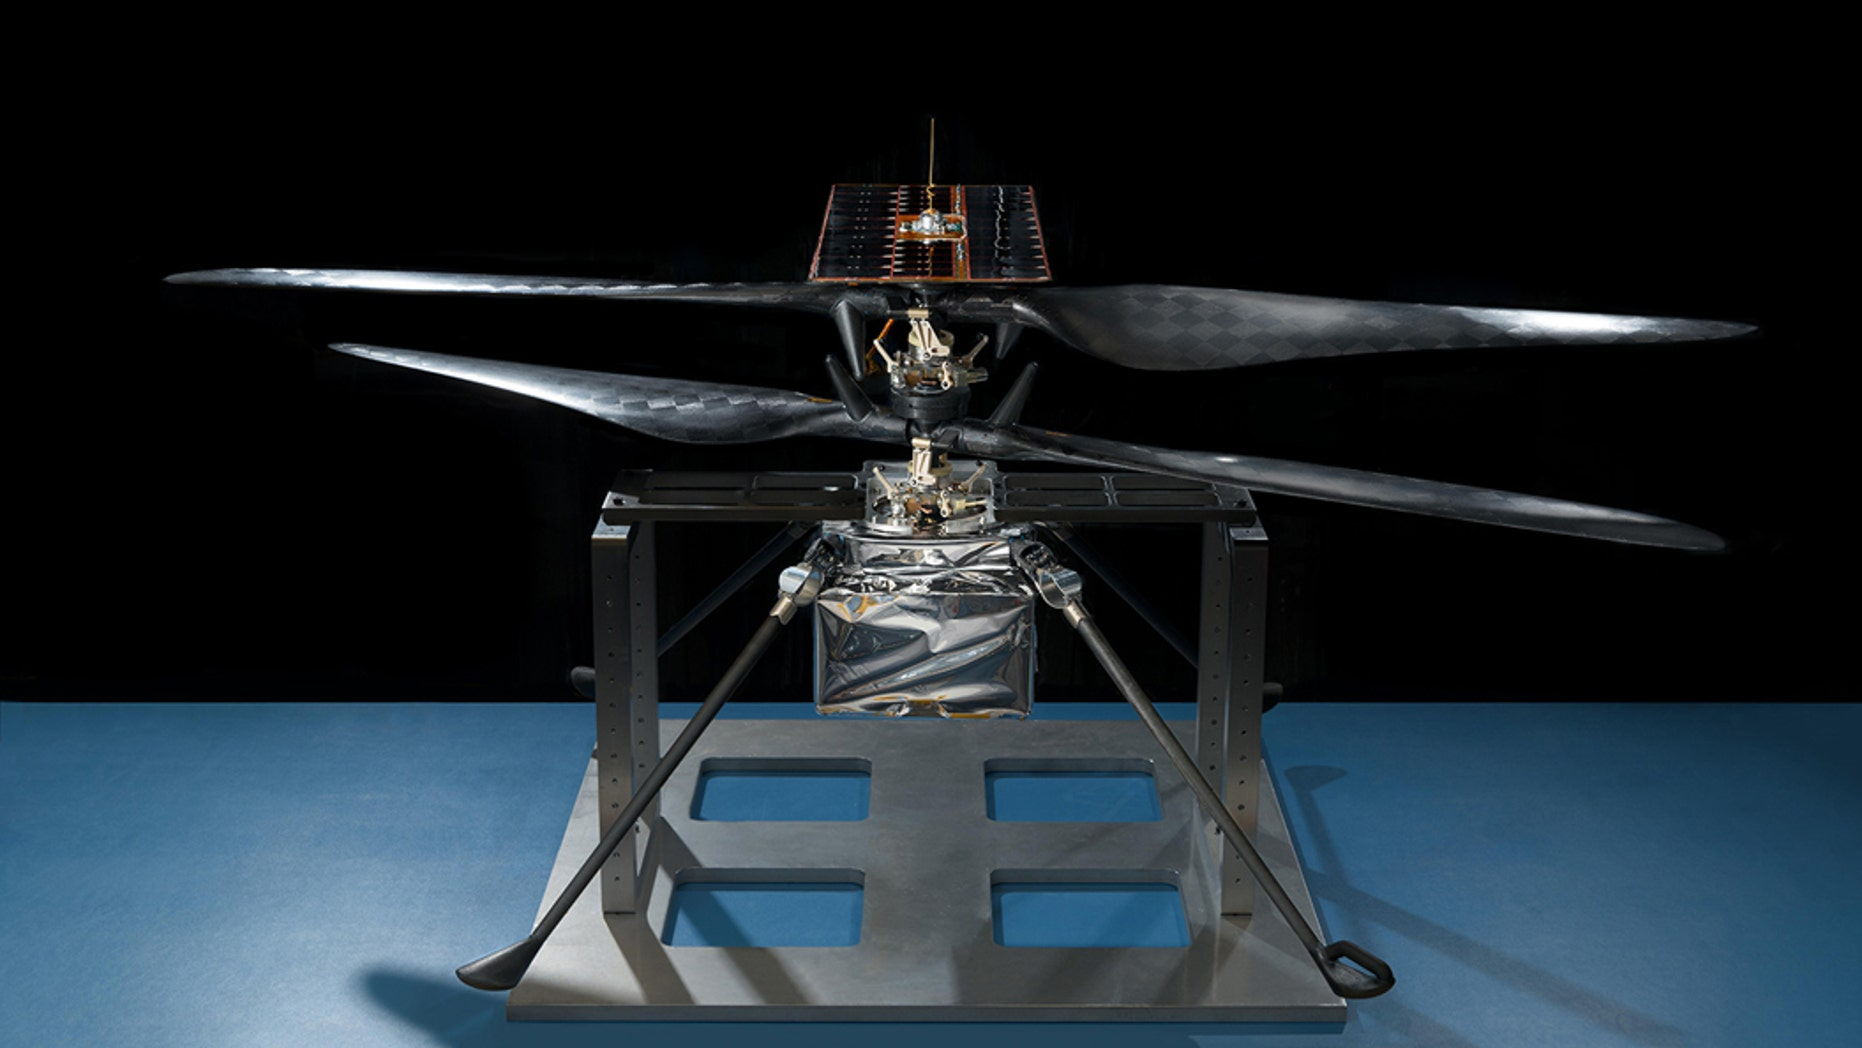 This image of the flight model of NASA's Mars Helicopter was taken on Feb. 14, 2019, in a cleanroom at NASA's Jet Propulsion Laboratory in Pasadena, California. The aluminum base plate, side posts, and crossbeam around the helicopter protect the helicopter's landing legs and the attachment points that will hold it to the belly of the Mars 2020 rover. (Credit: NASA/JPL-Caltech )